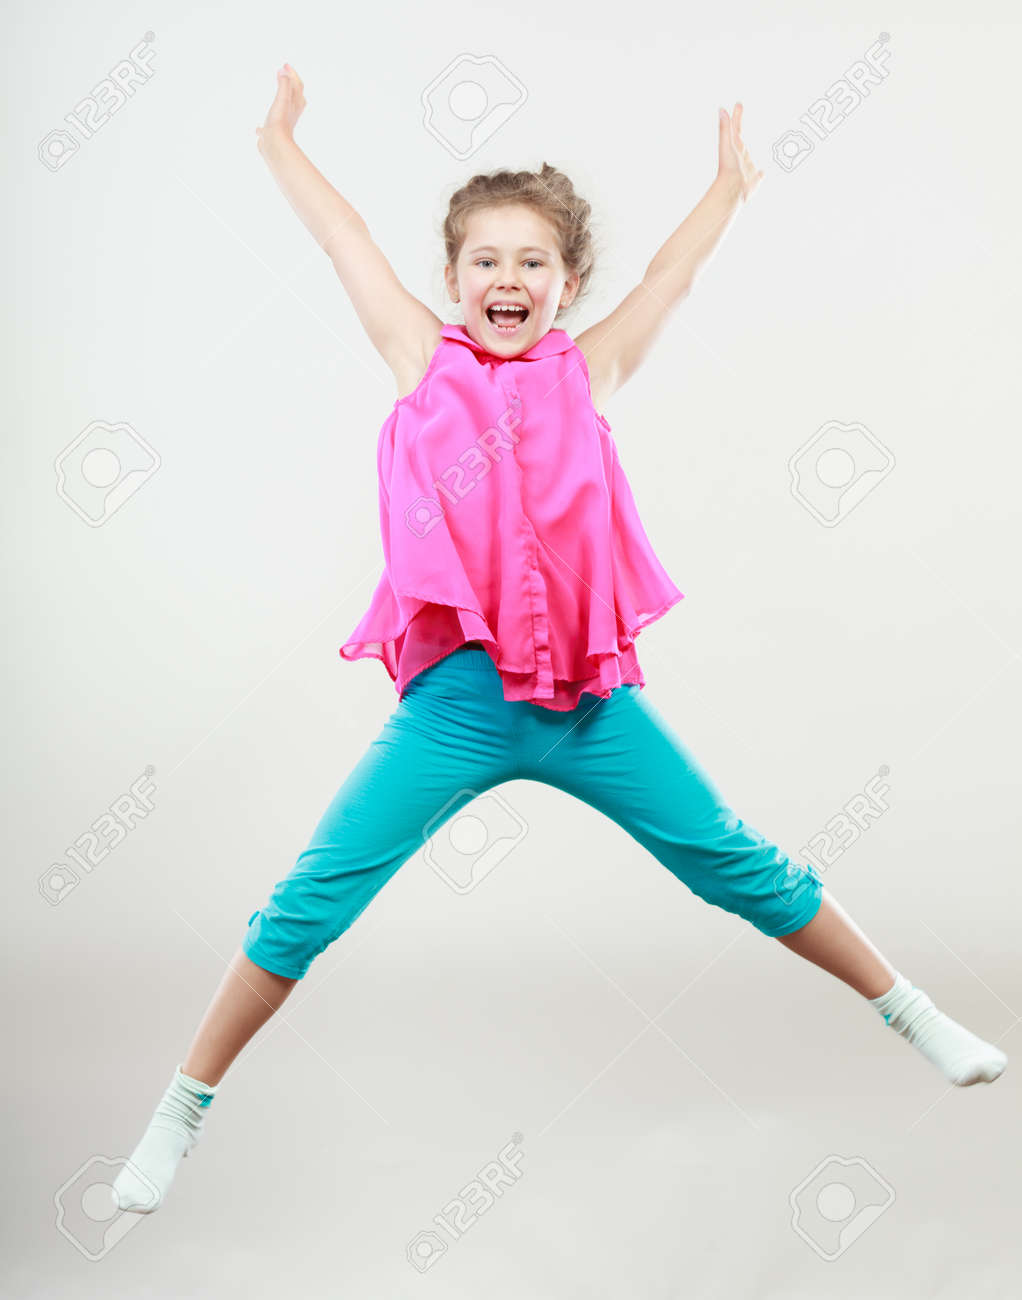 excited happy little girl jumping for joy in air joyful cheerful